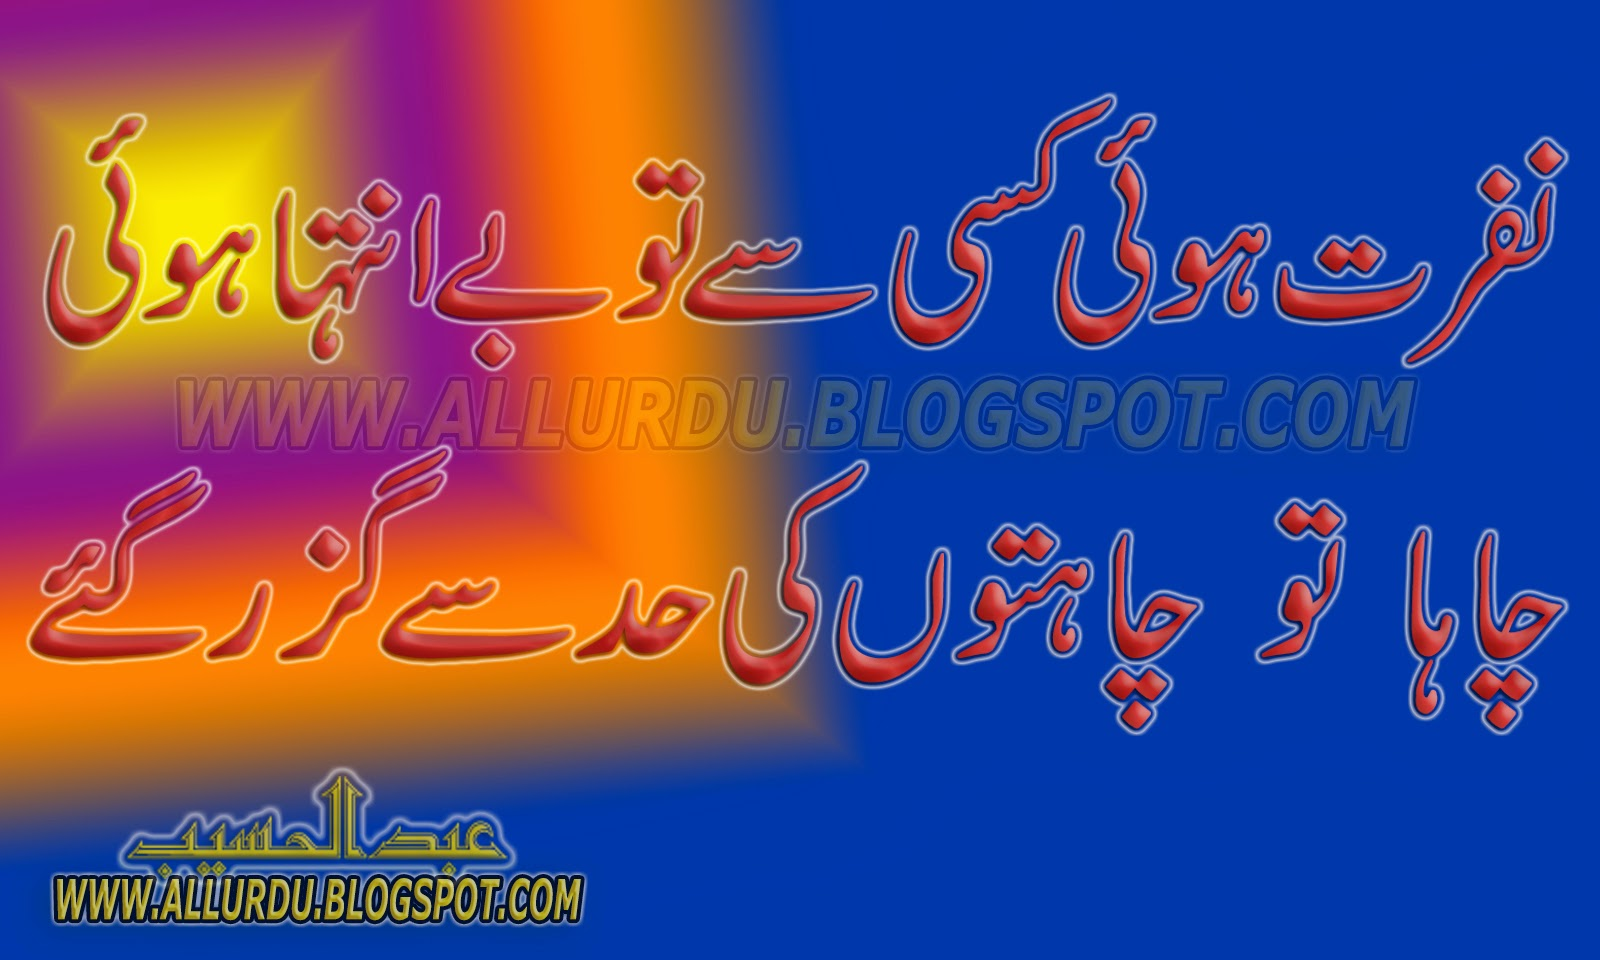 Best burdu poetry,2 lines poetry